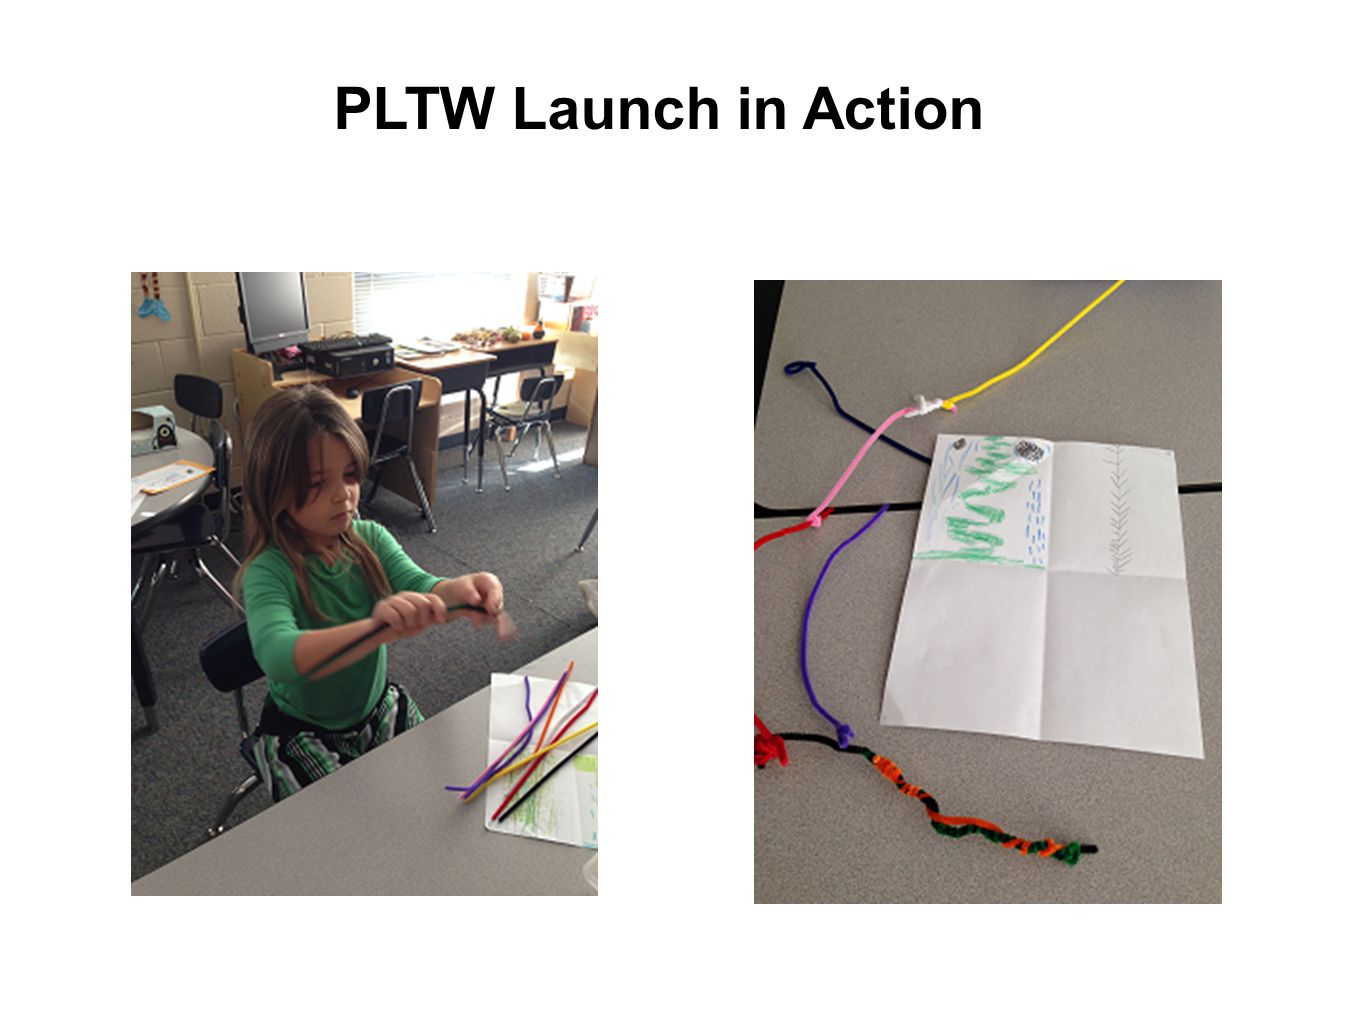 PLTW Launch in Action